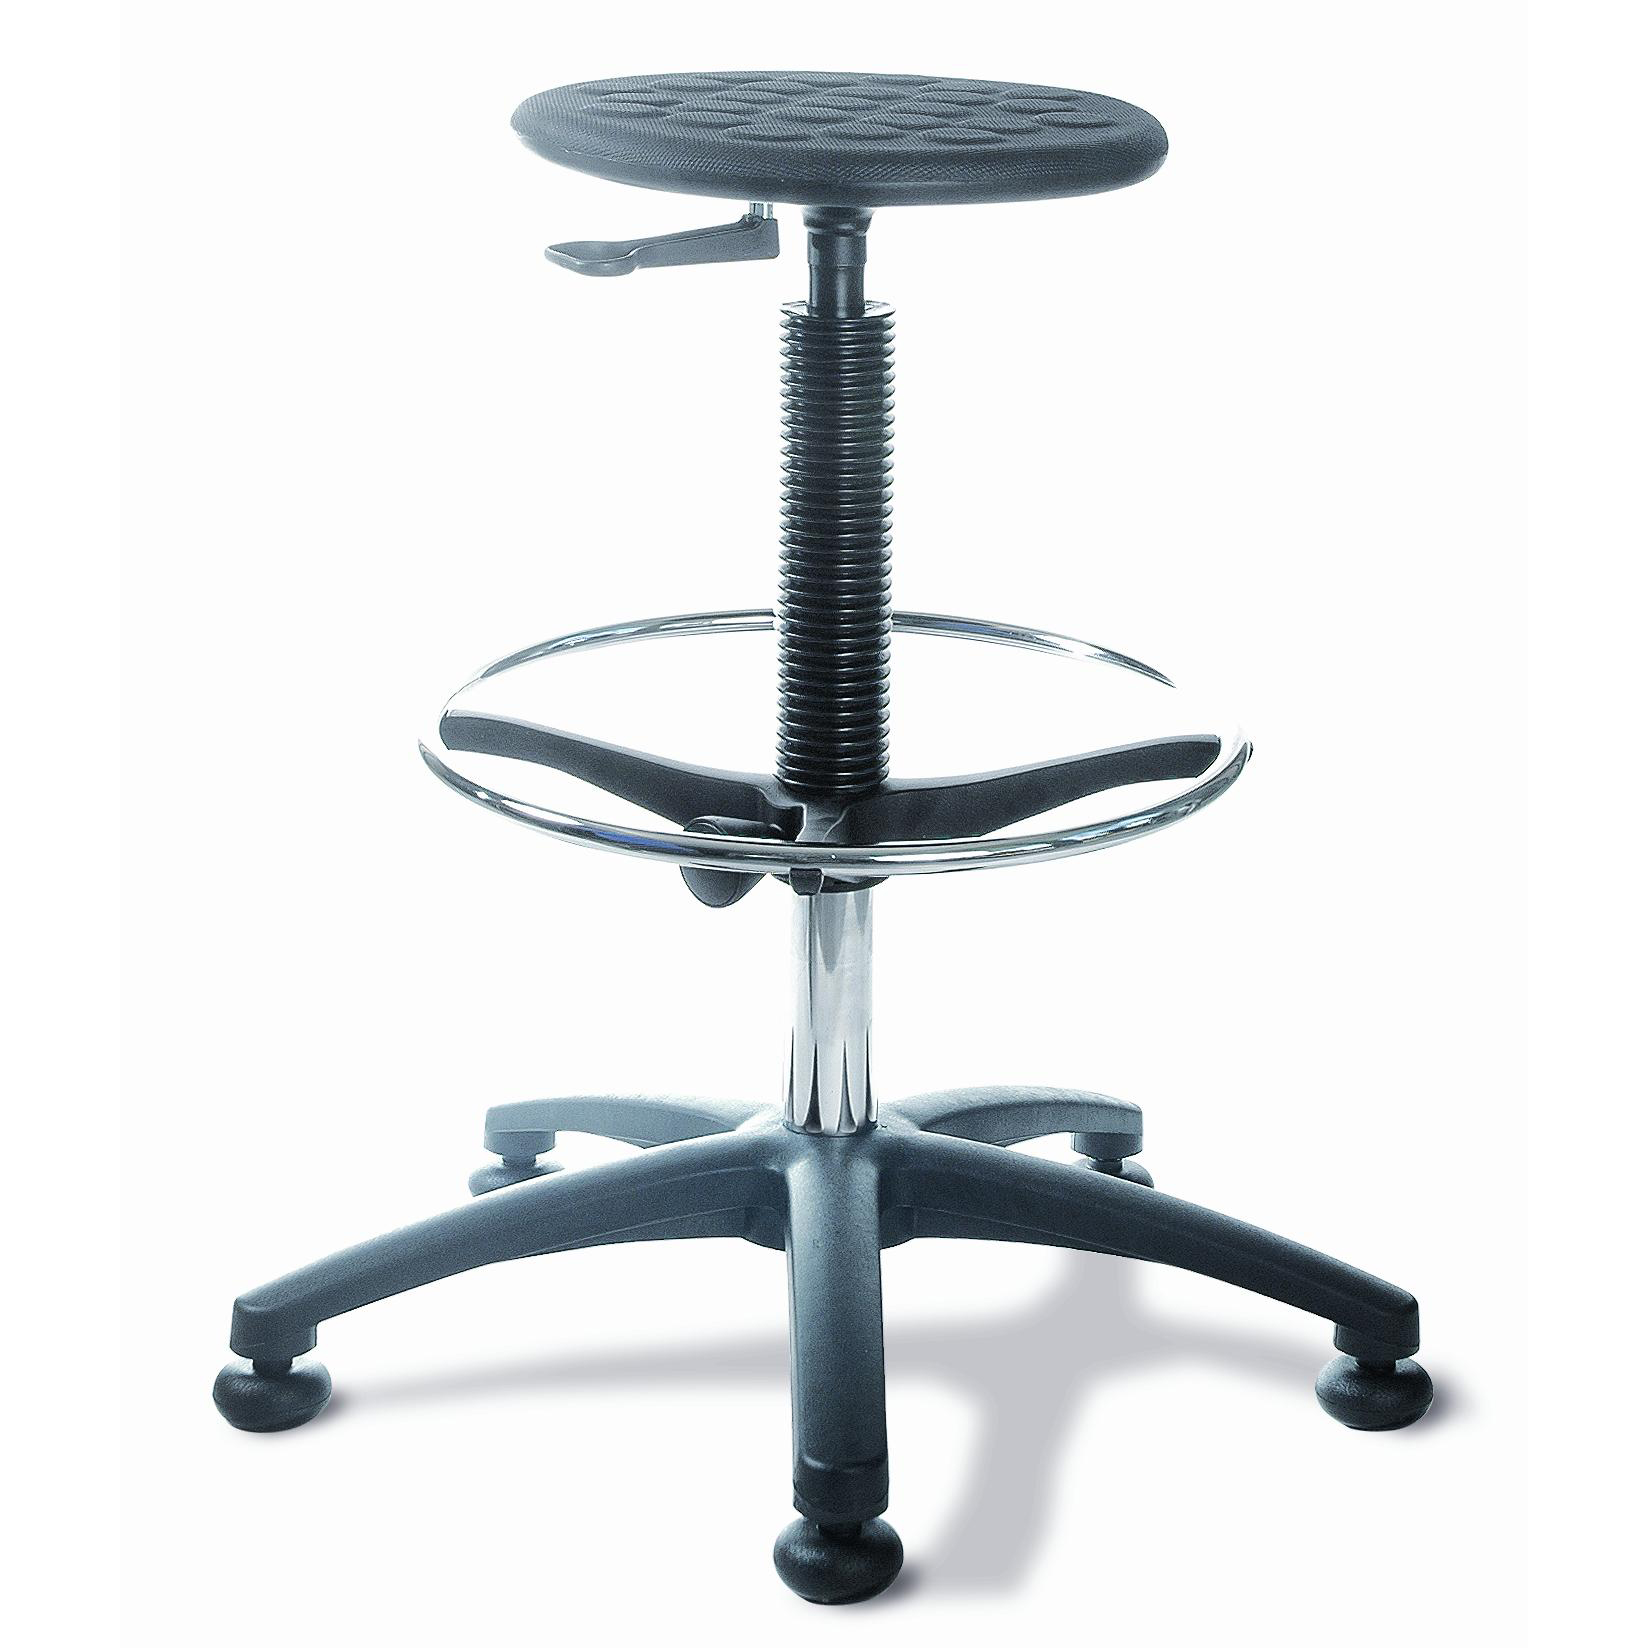 Product info moreover Product info furthermore 52257 likewise Taski in addition Product info. on rubbermaid products catalog